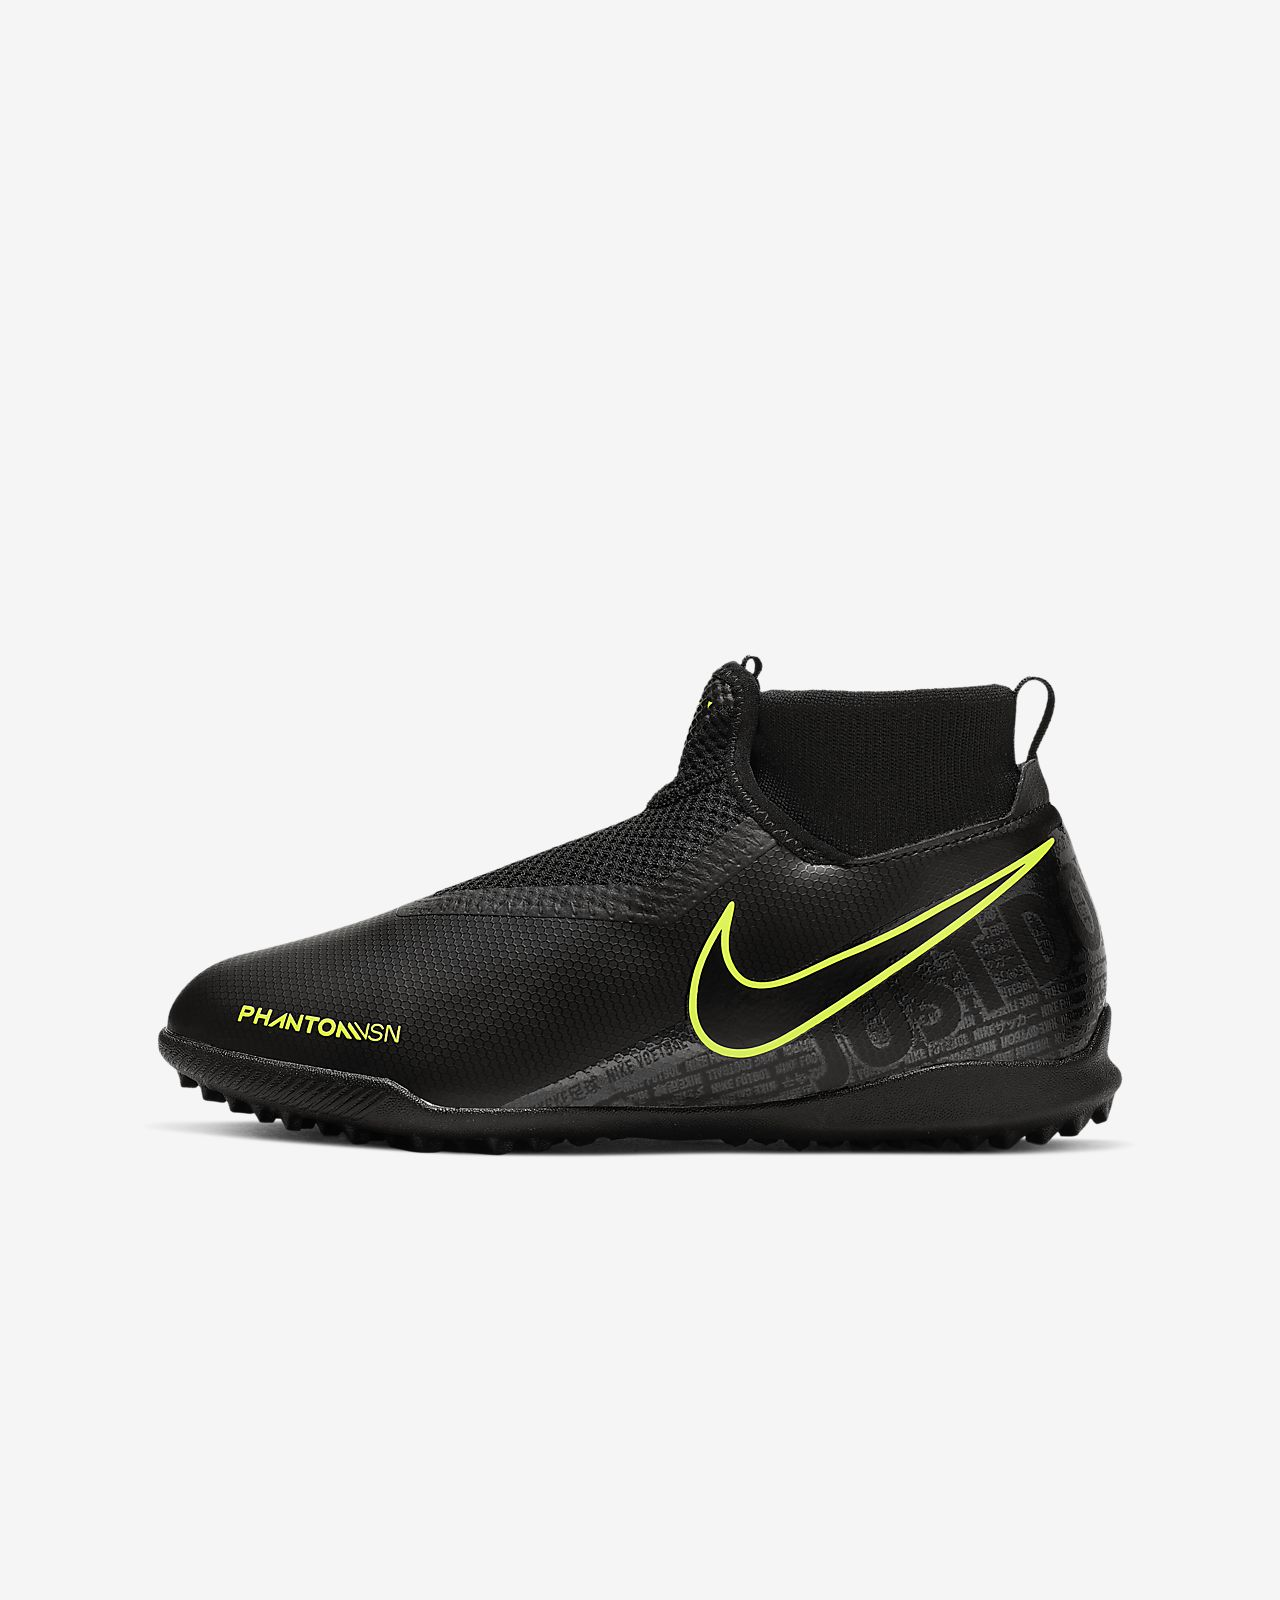 Nike Jr. Phantom Vision Academy Dynamic Fit Younger/Older Kids' Turf Football Shoe